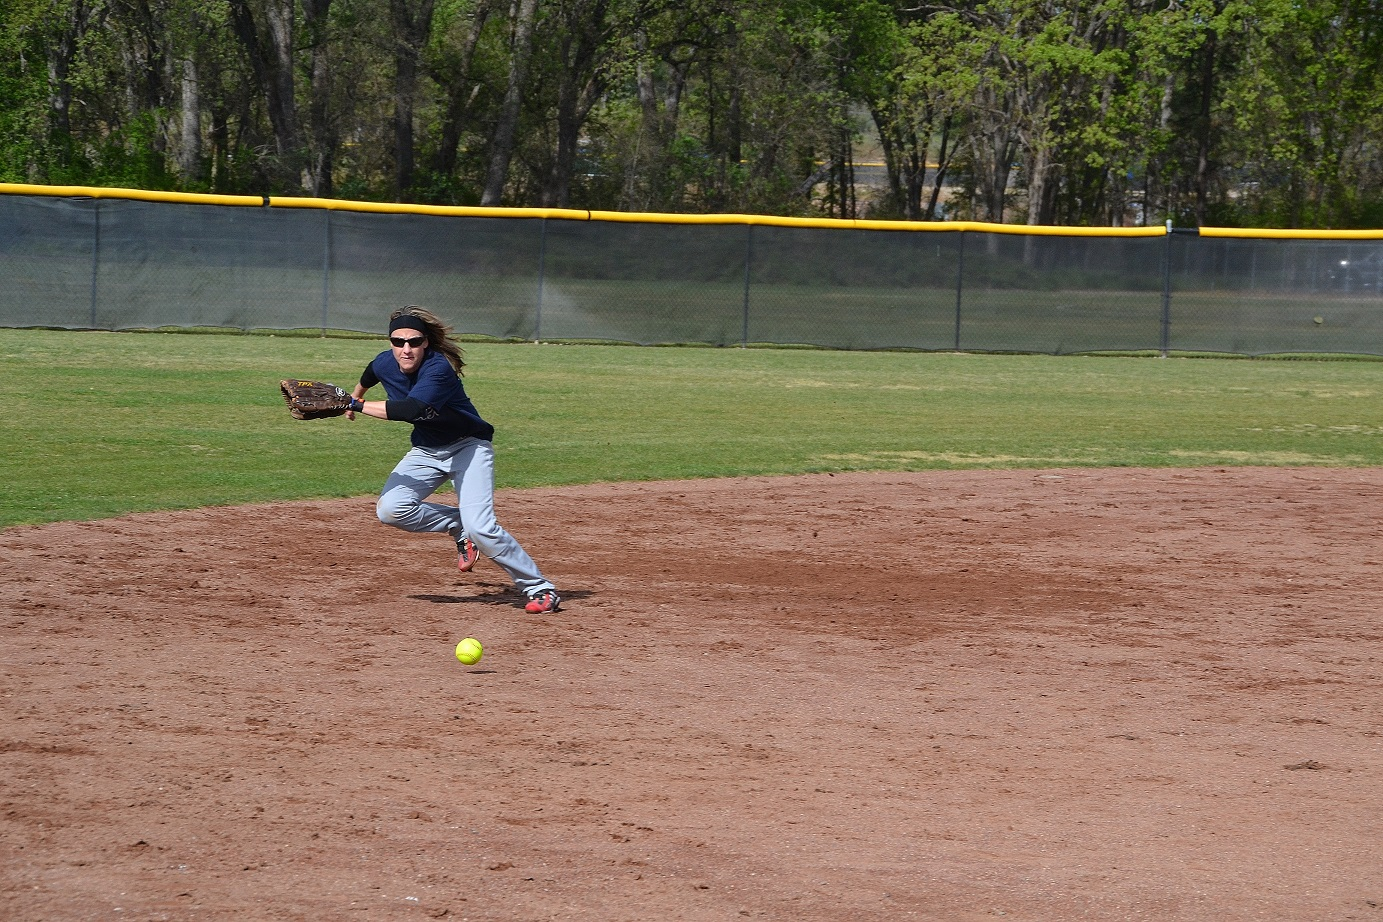 Kasey Lutz plays a mean shortstop